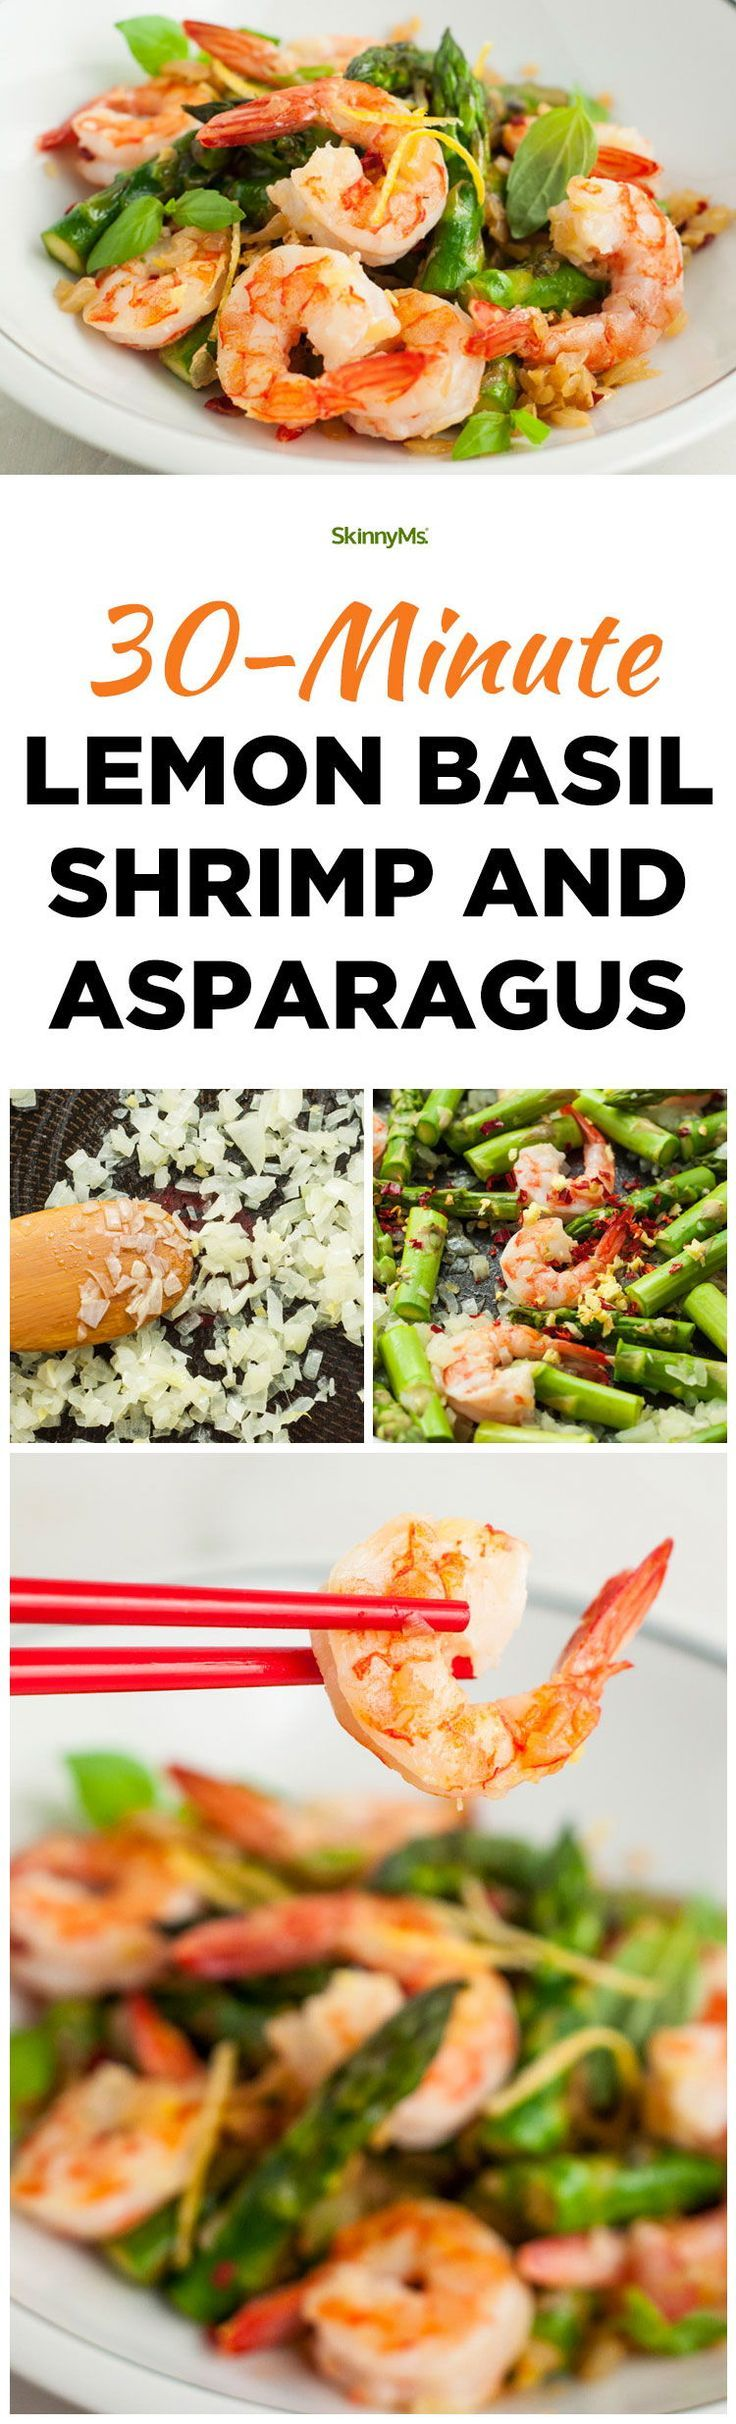 This 30-Minute Lemon Basil Shrimp and Asparagus Recipe is so quick and easy!  #cleaneating #cleaneats #recipe #healthydinneroptions